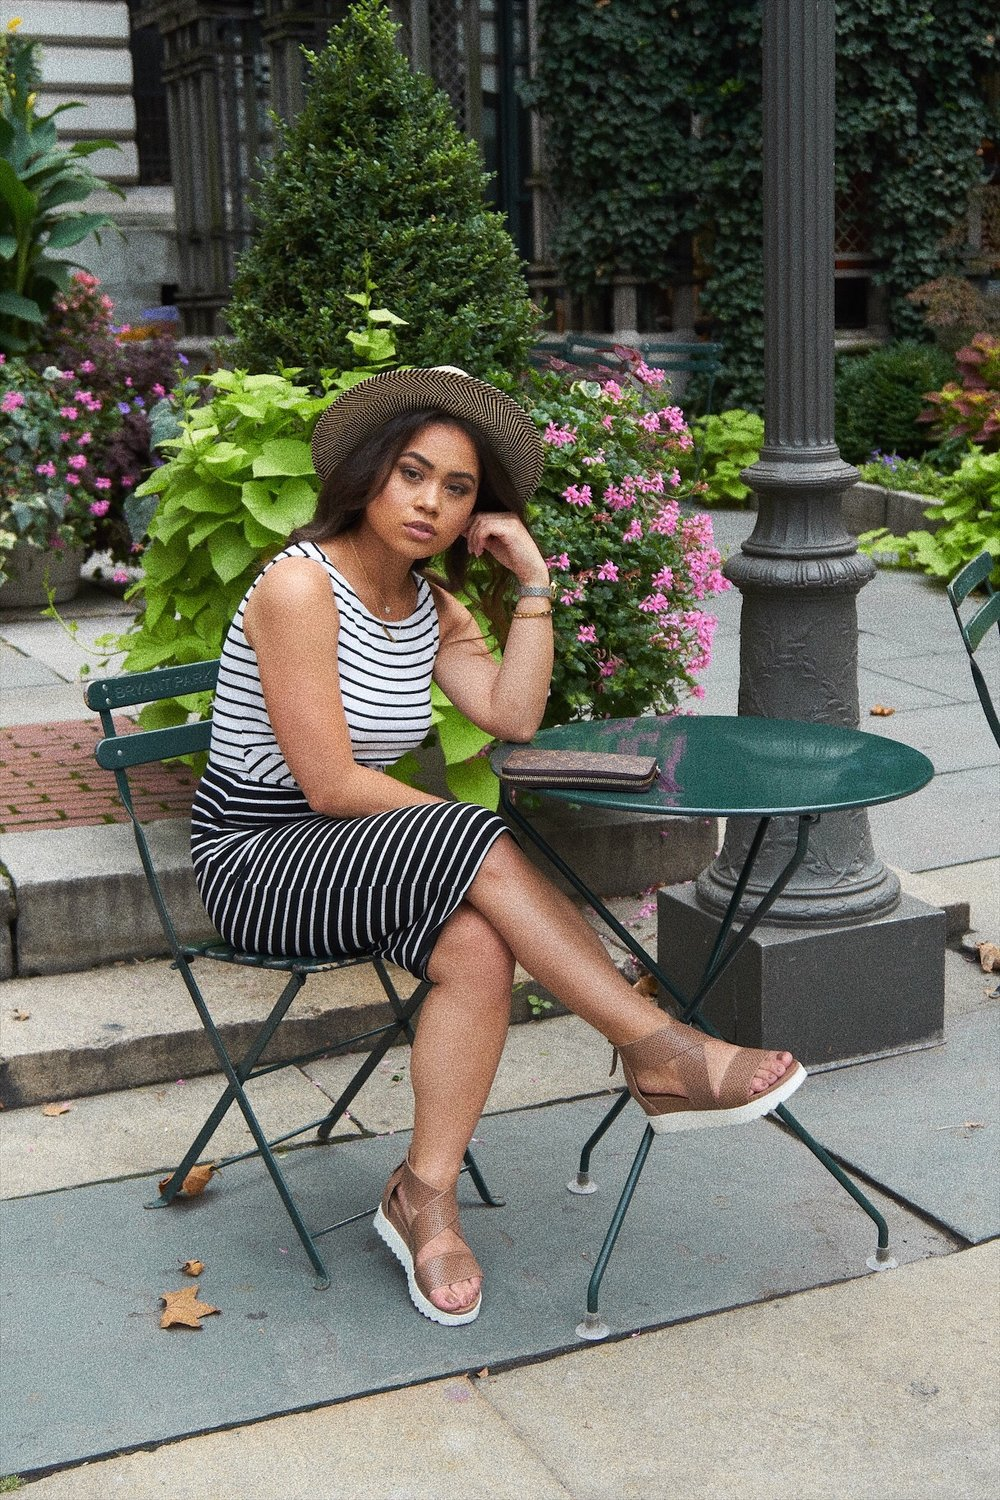 CLASSIC STRIPE DRESS PERFECT FOR SUMMER